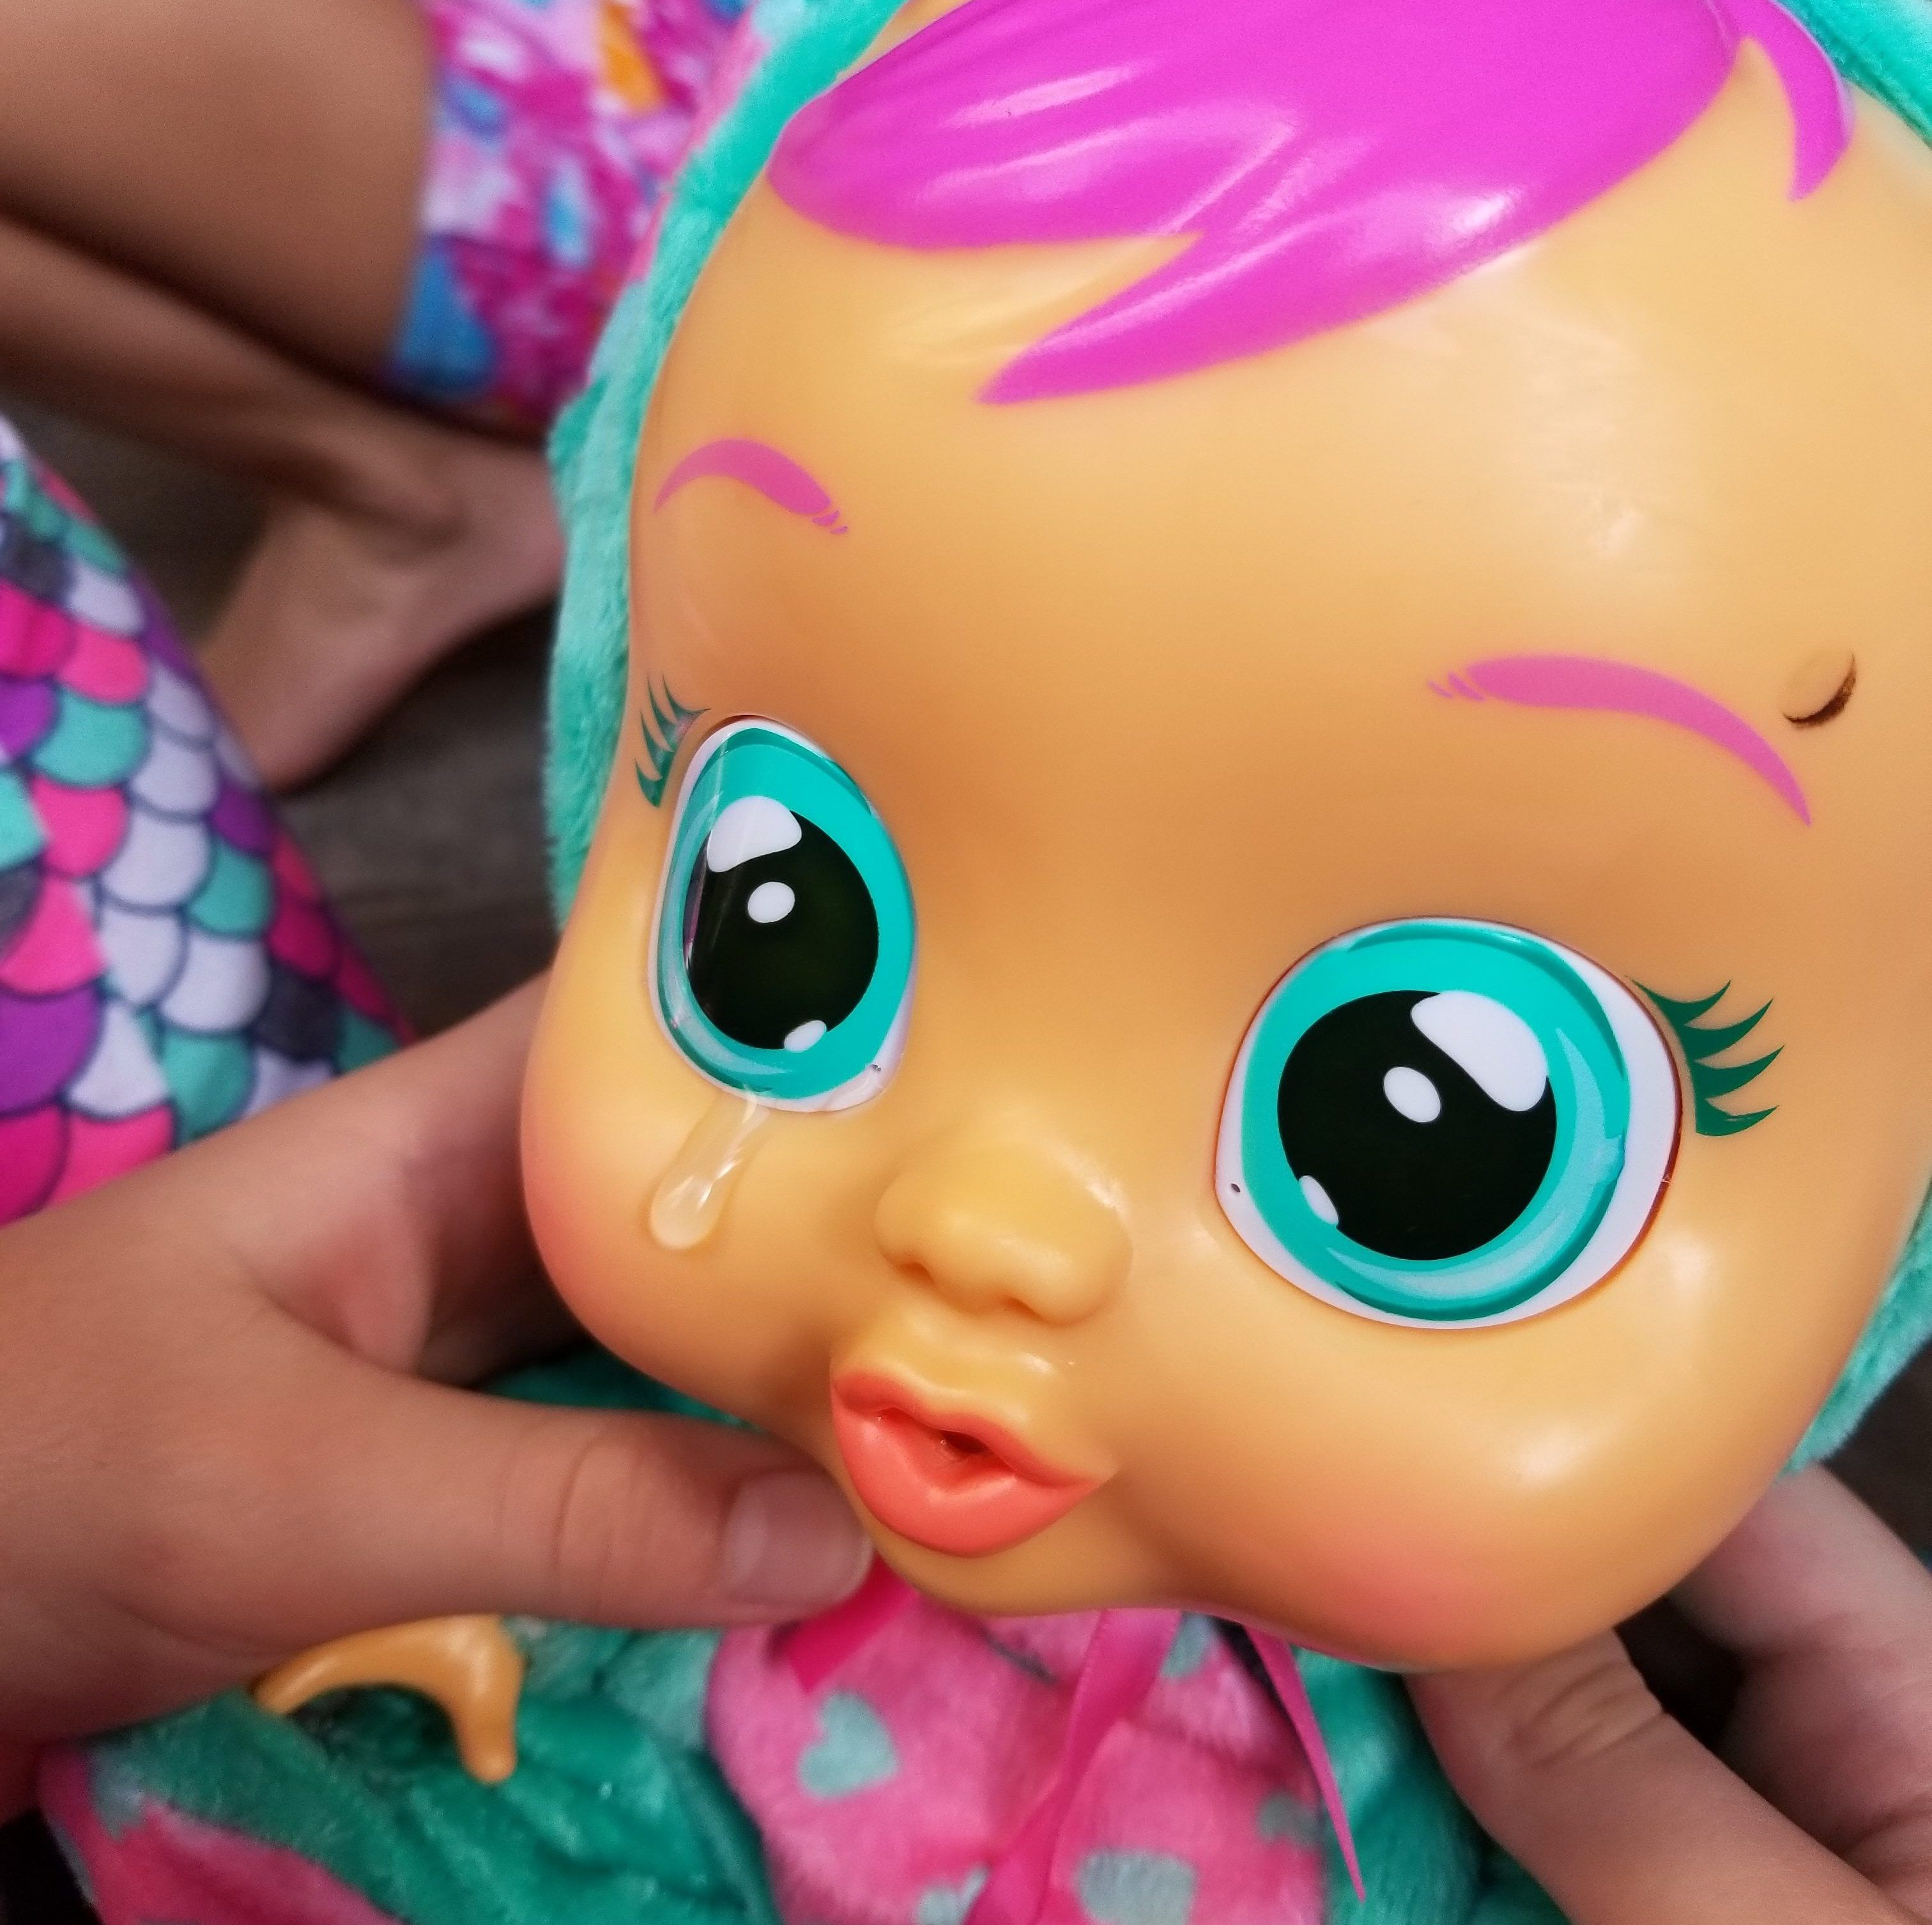 These Dolls Cry Tears For Real Cry Babies Dolls Review Baby Dolls Cry Baby Toy Cars For Kids